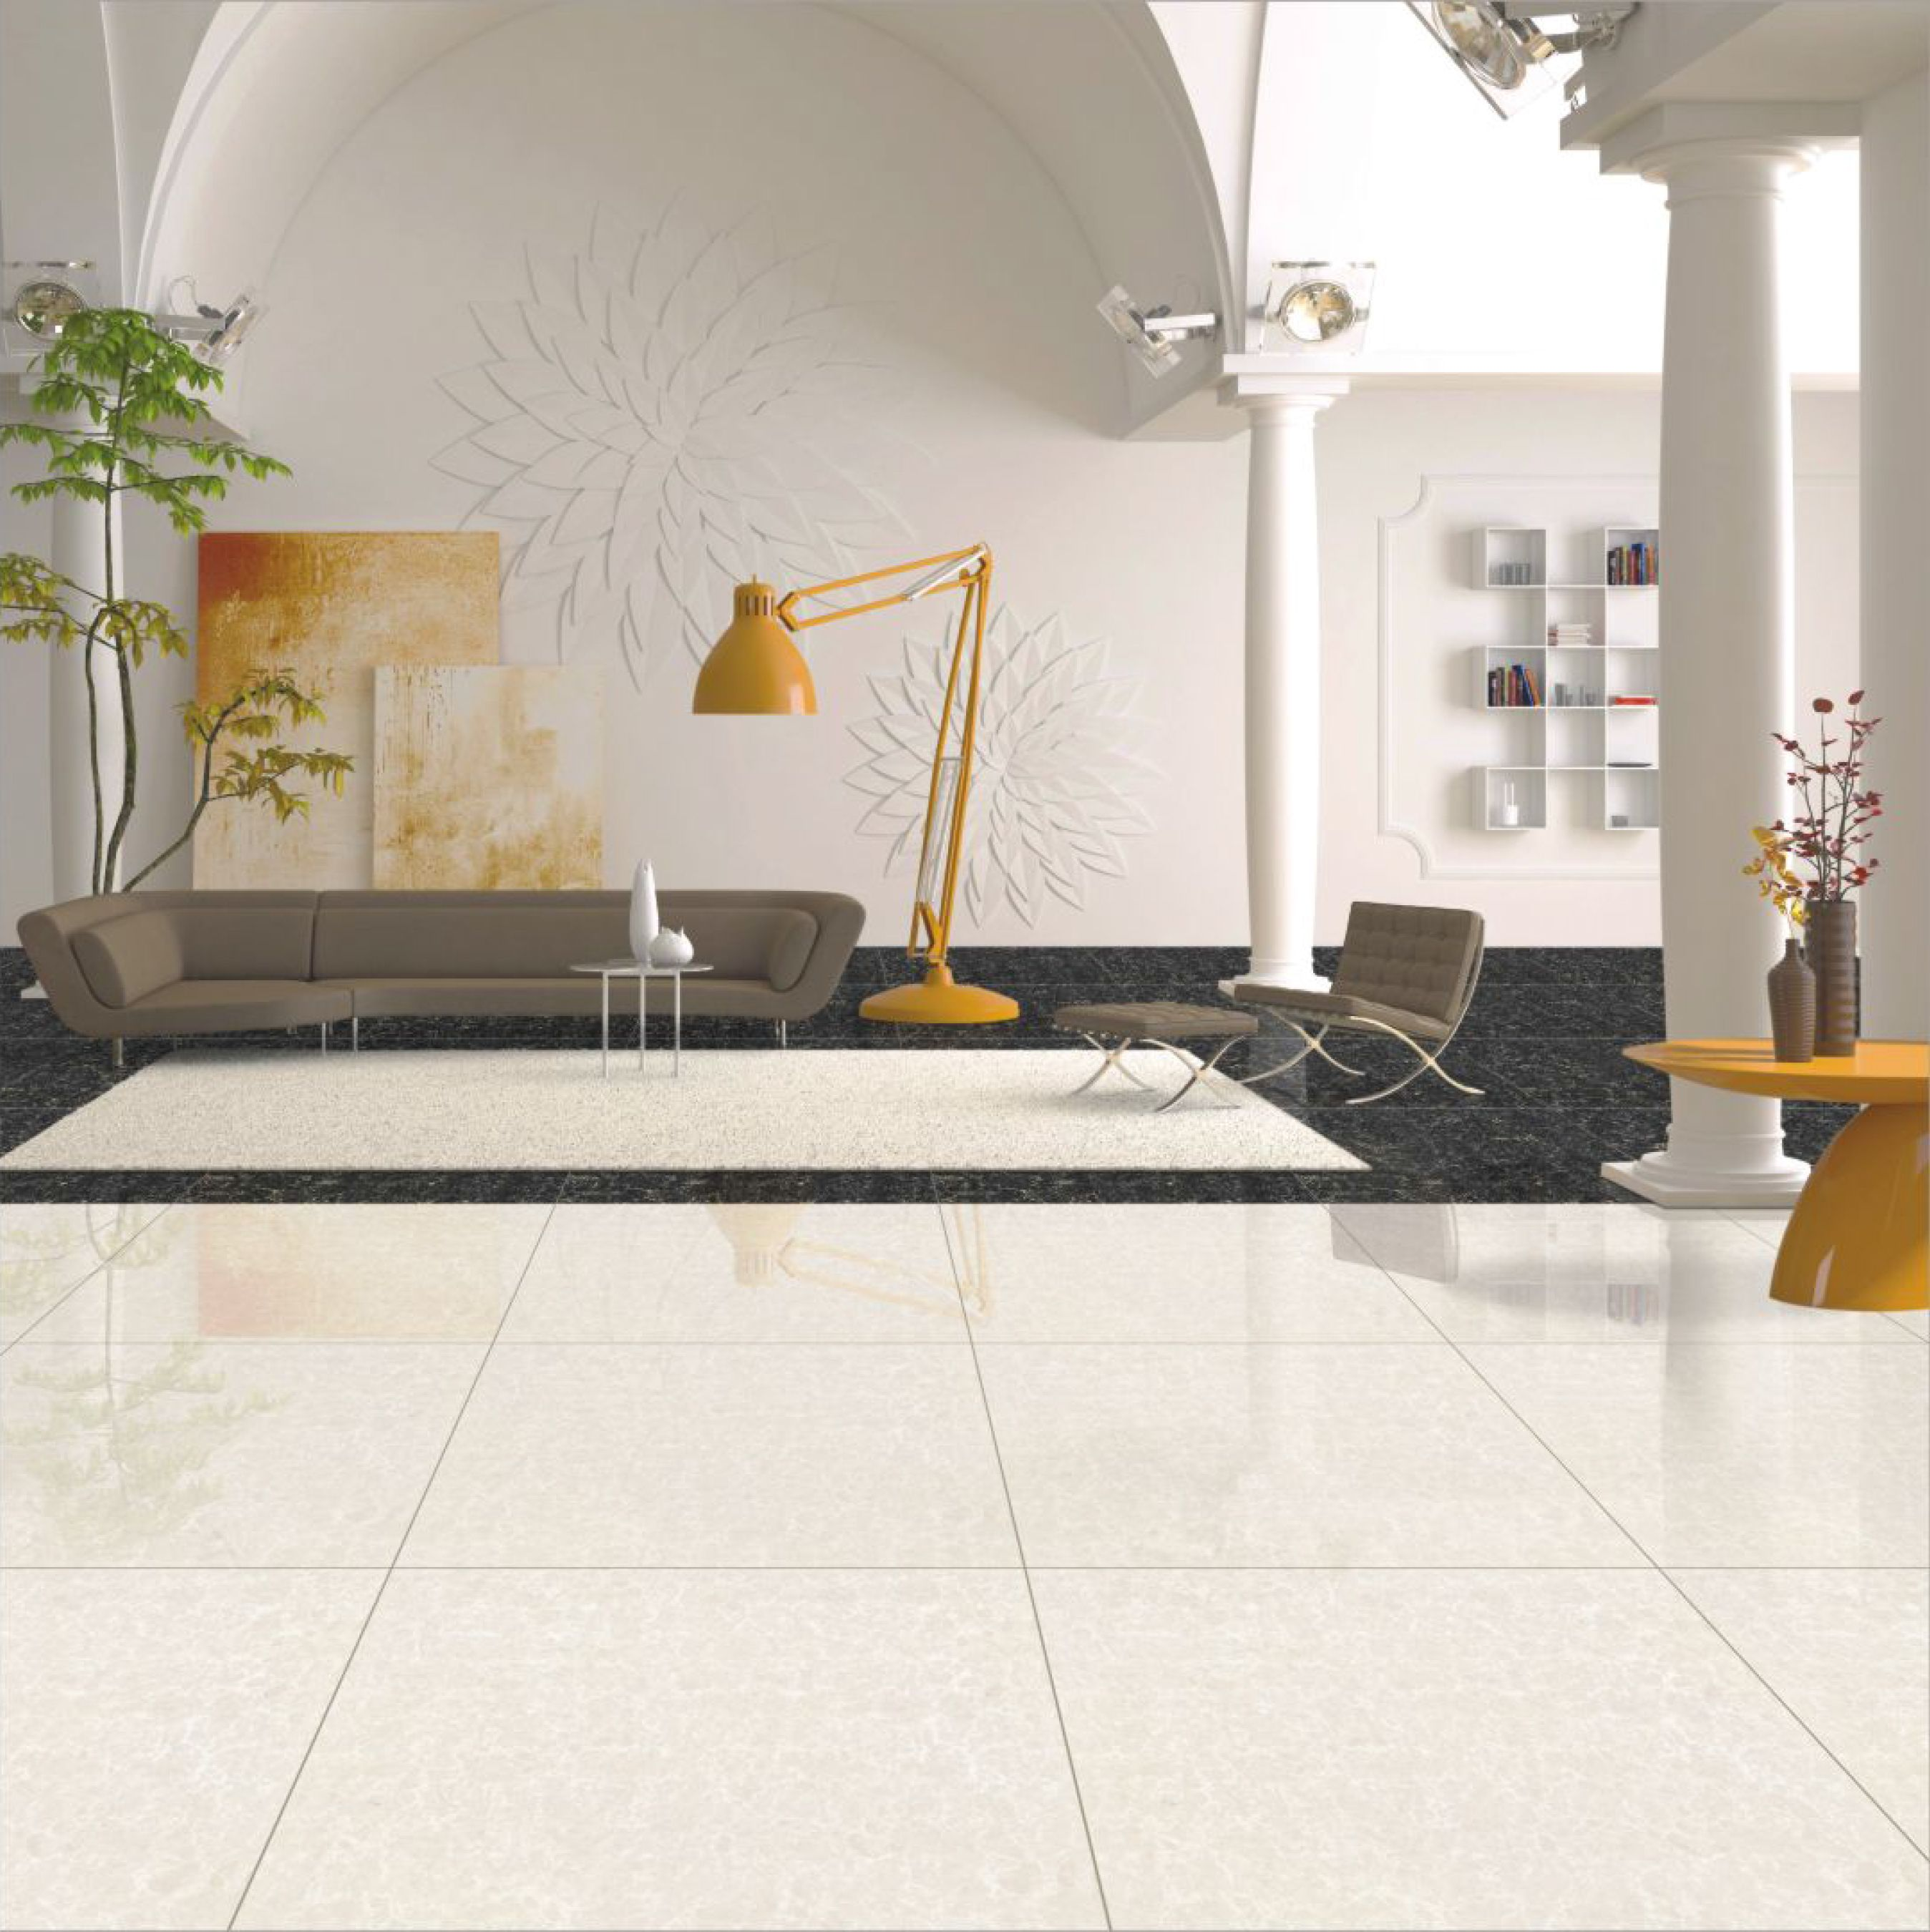 Double charge floor tiles double charge tiles pinterest double charge tiles elegant vitrified tiles for floor to make your kitchen and bathroom beautiful along with flourishing your entire home dailygadgetfo Images